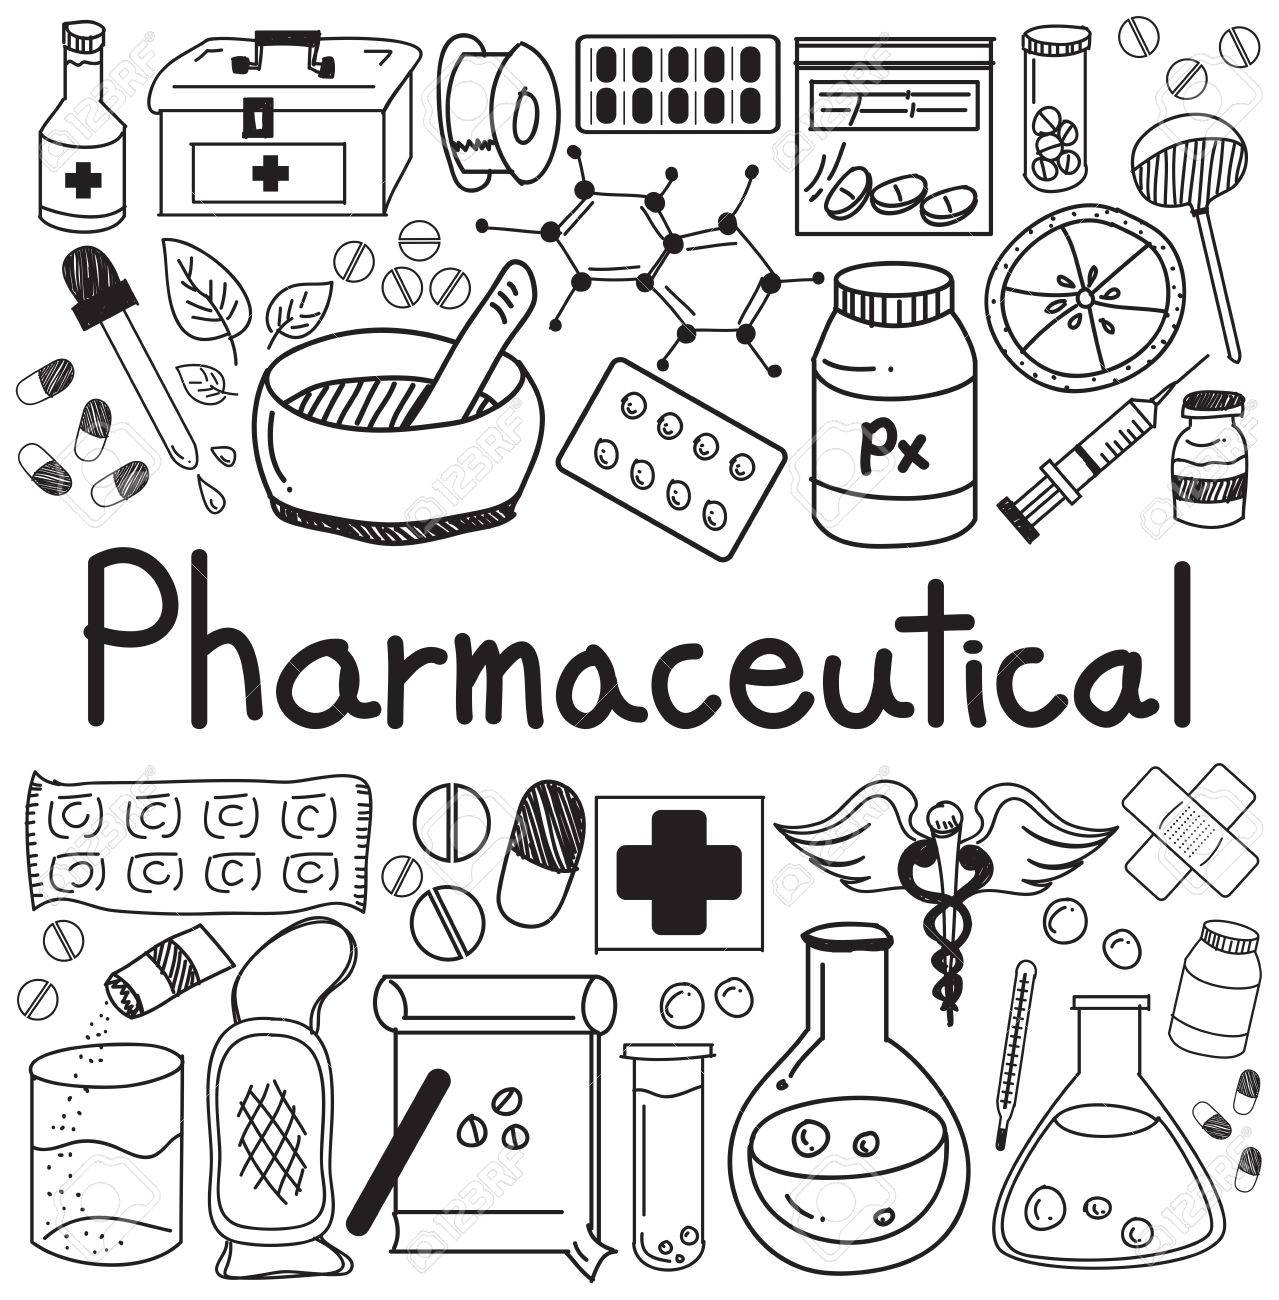 Pharmaceutical and pharmacist doodle handwriting icons of medicines pharmaceutical and pharmacist doodle handwriting icons of medicines tools sign and symbol in white isolated paper buycottarizona Image collections